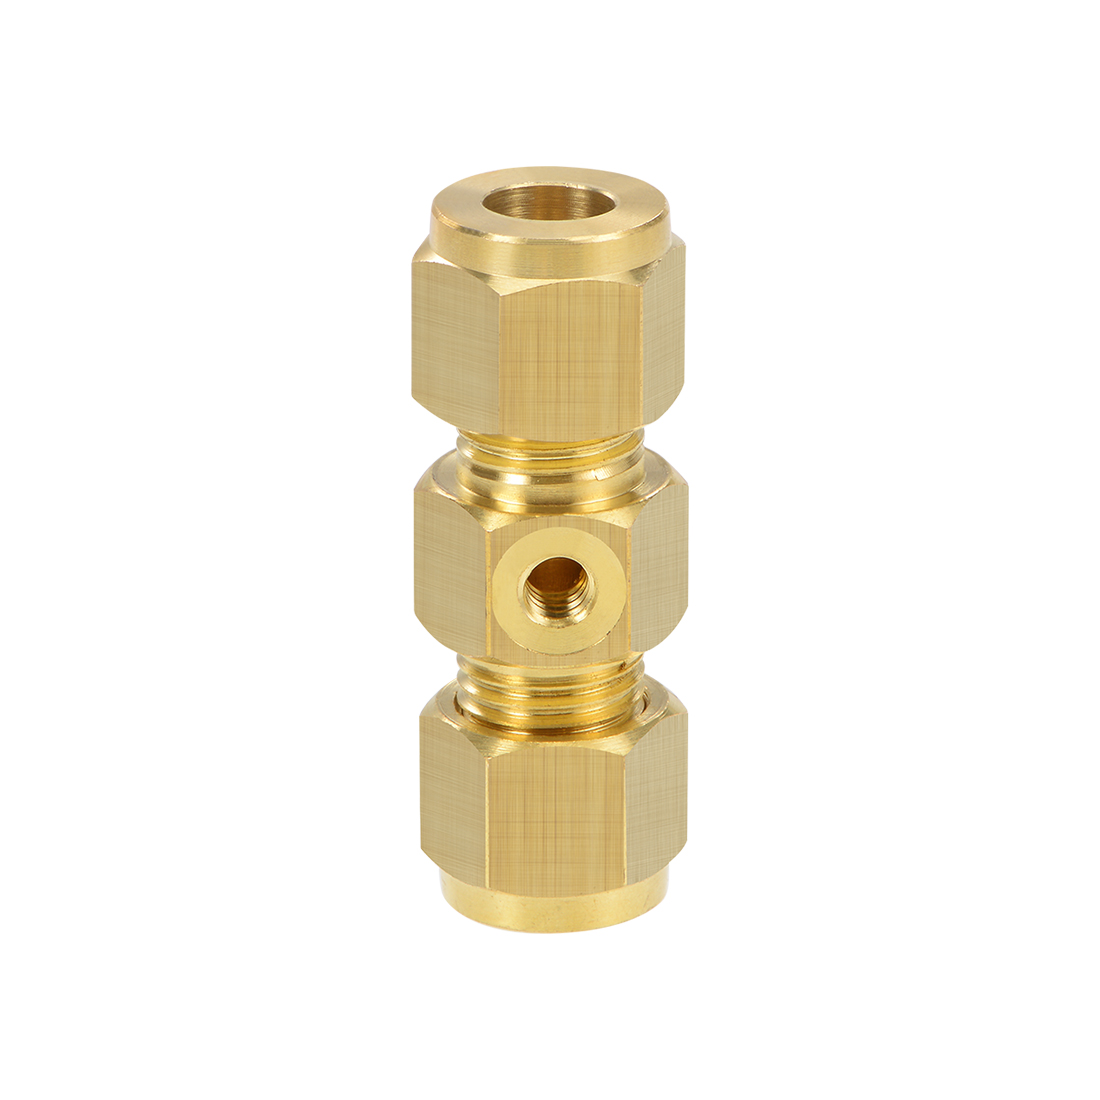 Brass Compression Tube Fitting 9.8mm OD UNC 10-24 Nozzle Hole Pipe Adapter